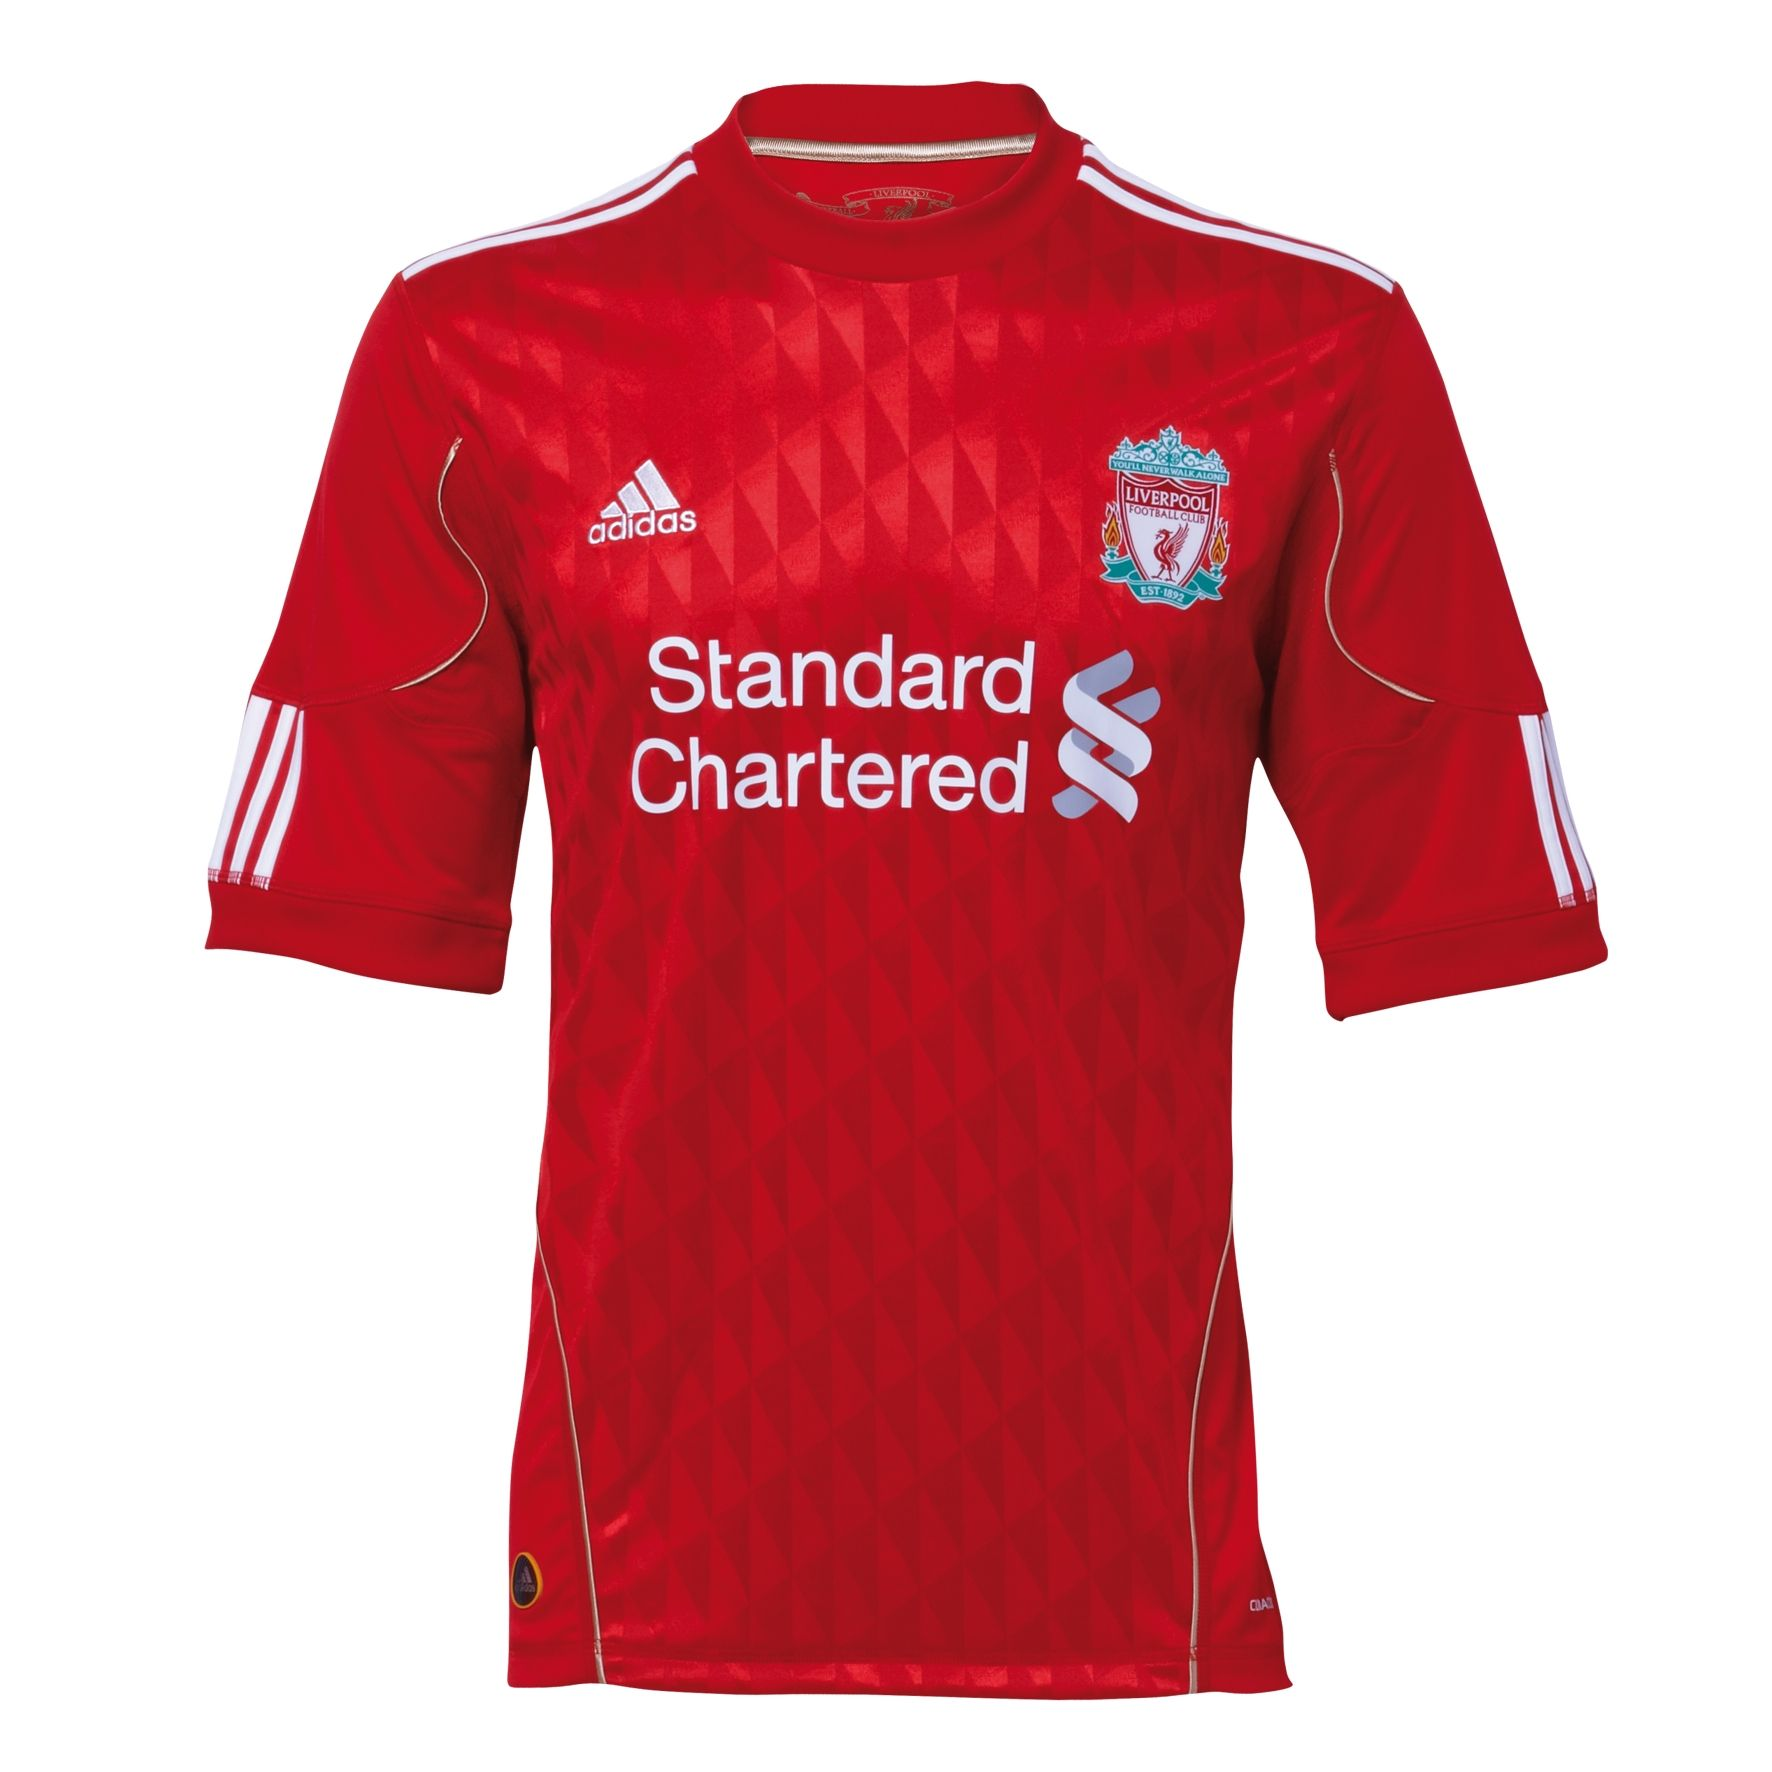 Liverpool 11-12 Home Shirt  Adidas P96763   80861a873